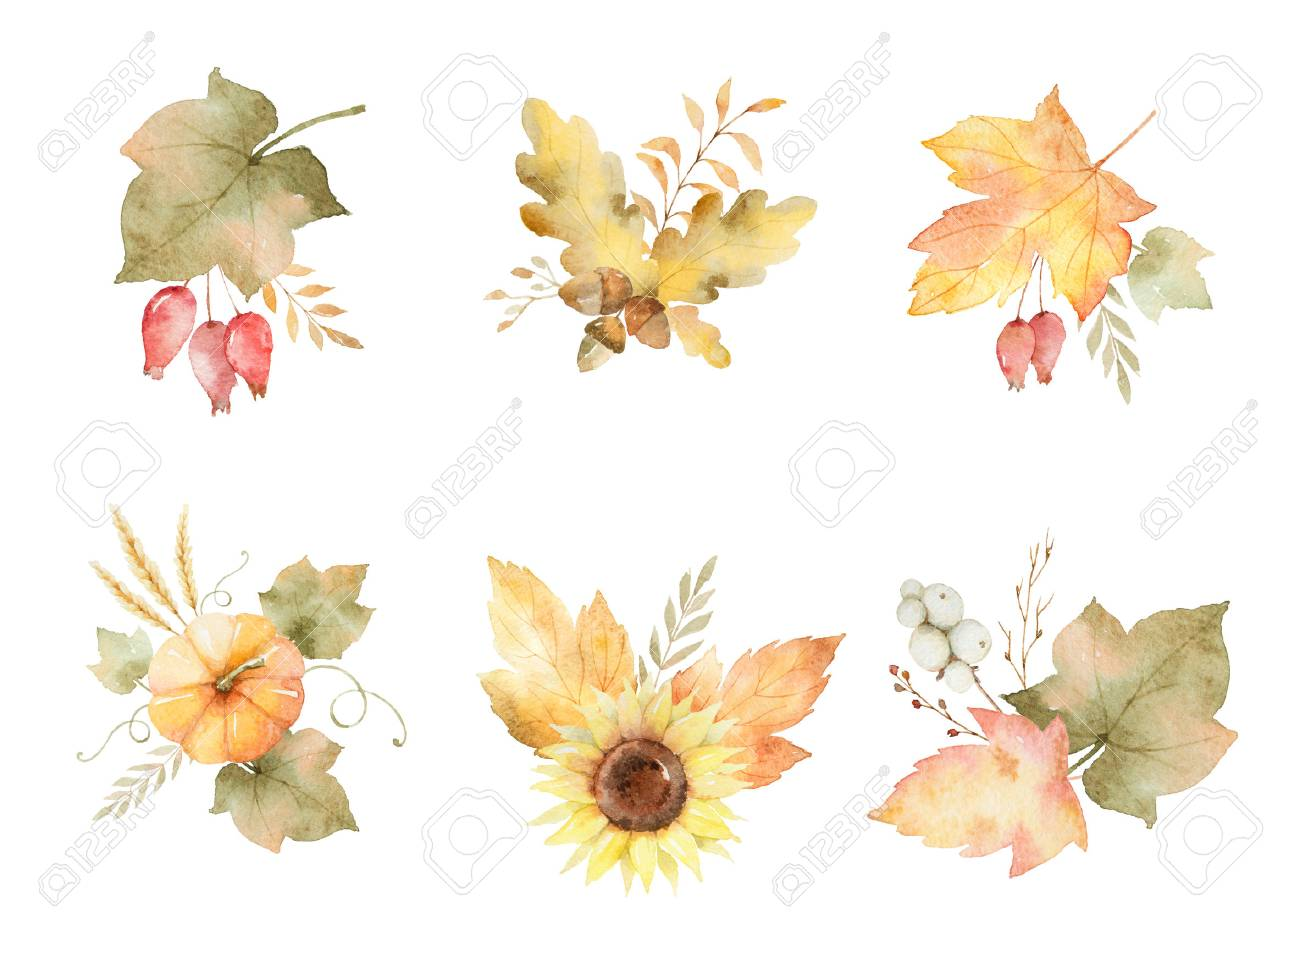 Watercolor autumn set of leaves, branches, flowers and pumpkins isolated on white background. - 82795116